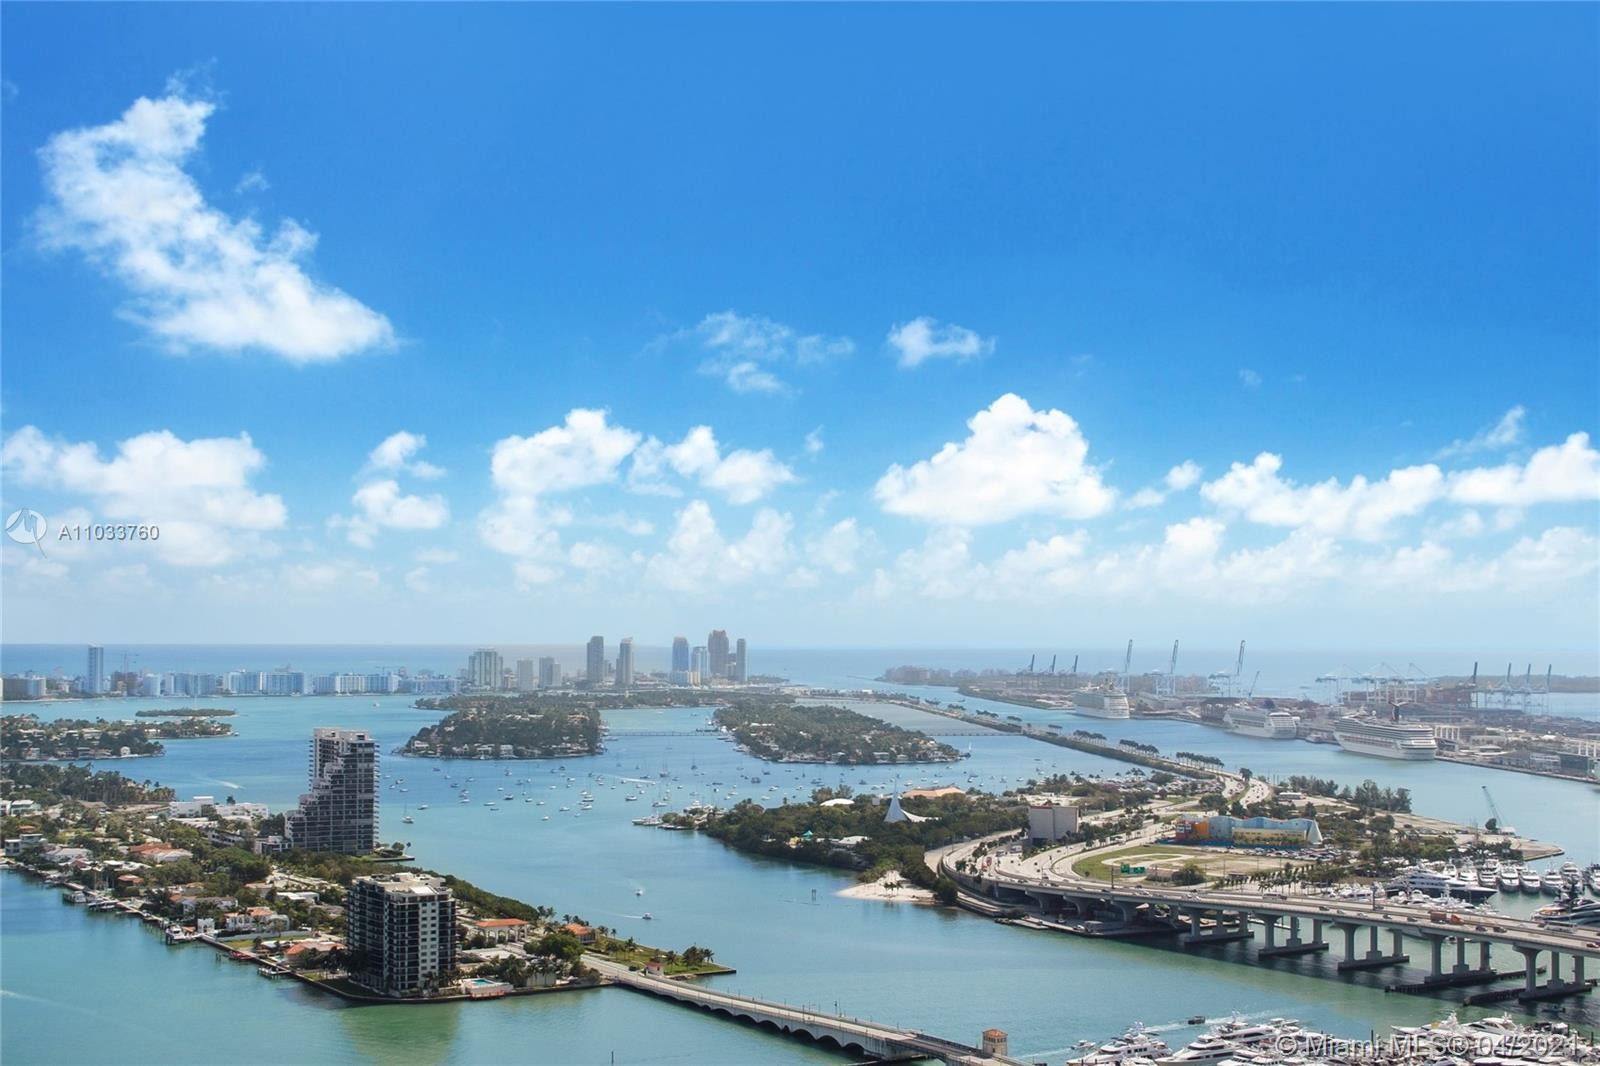 Large 3 bedroom residence on the 45th floor with unobstructed views of Biscayne Bay, Downtown/Bricke